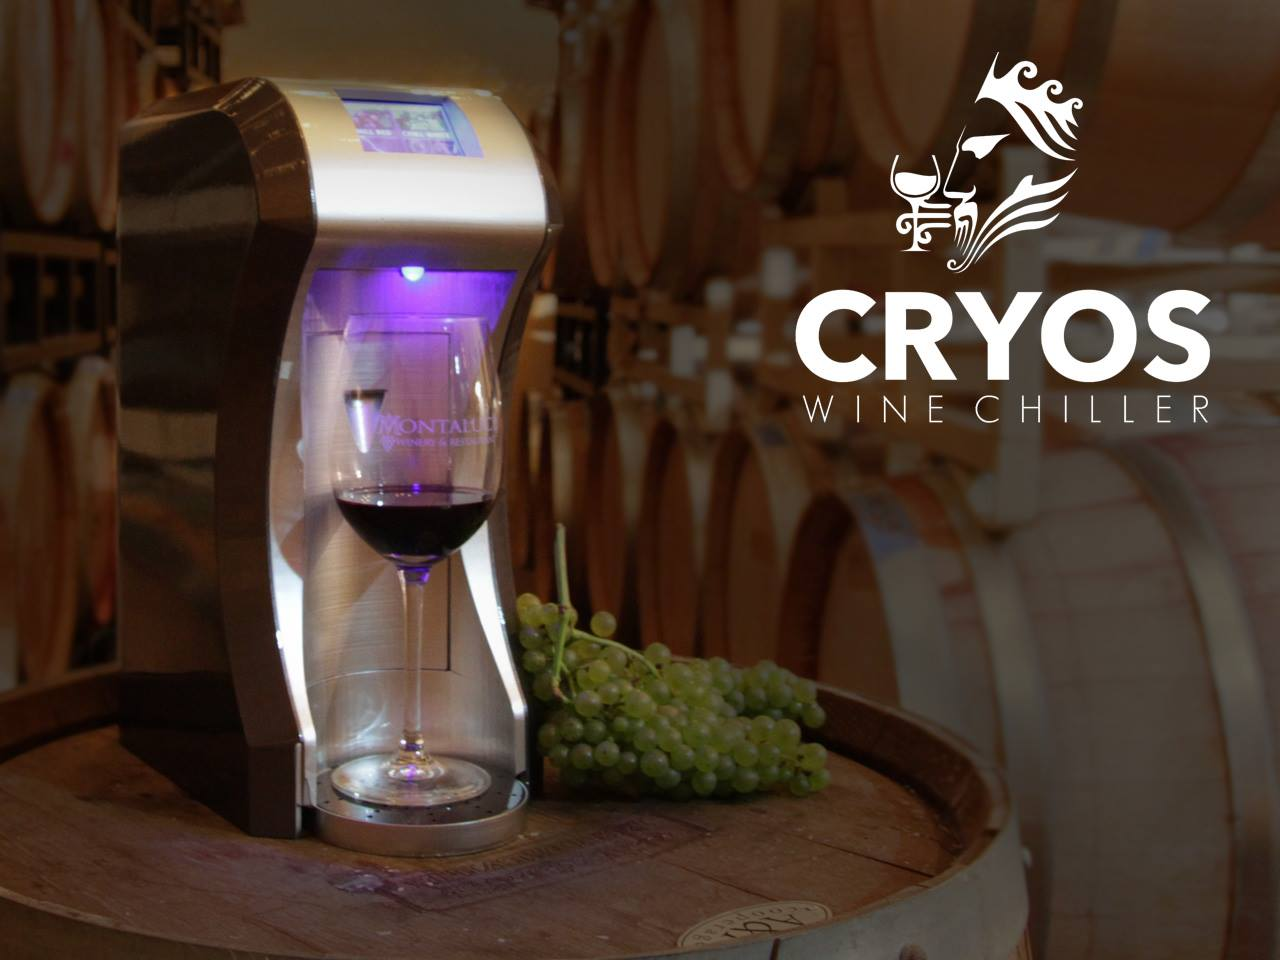 Image by Cryos Wine Chiller  | Just Wine